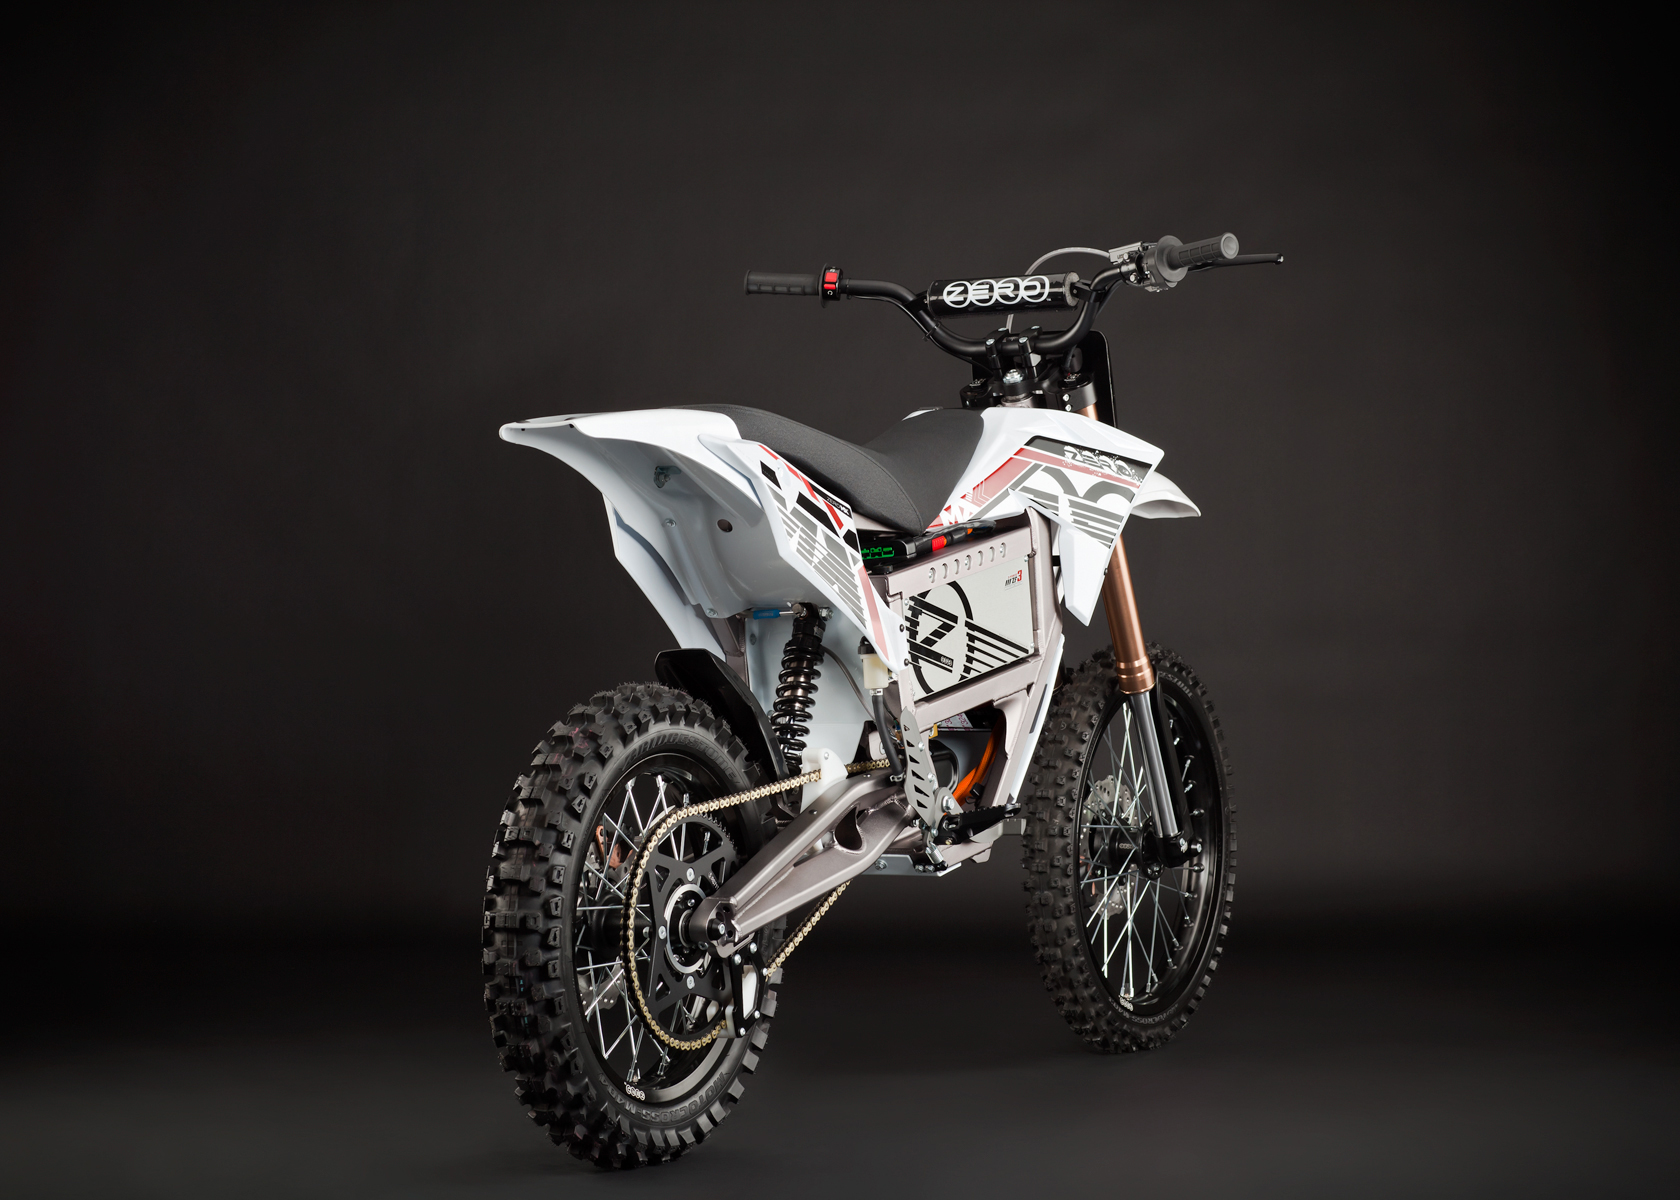 2012 Zero MX Electric Motorcycle: Angle Right, Rear View